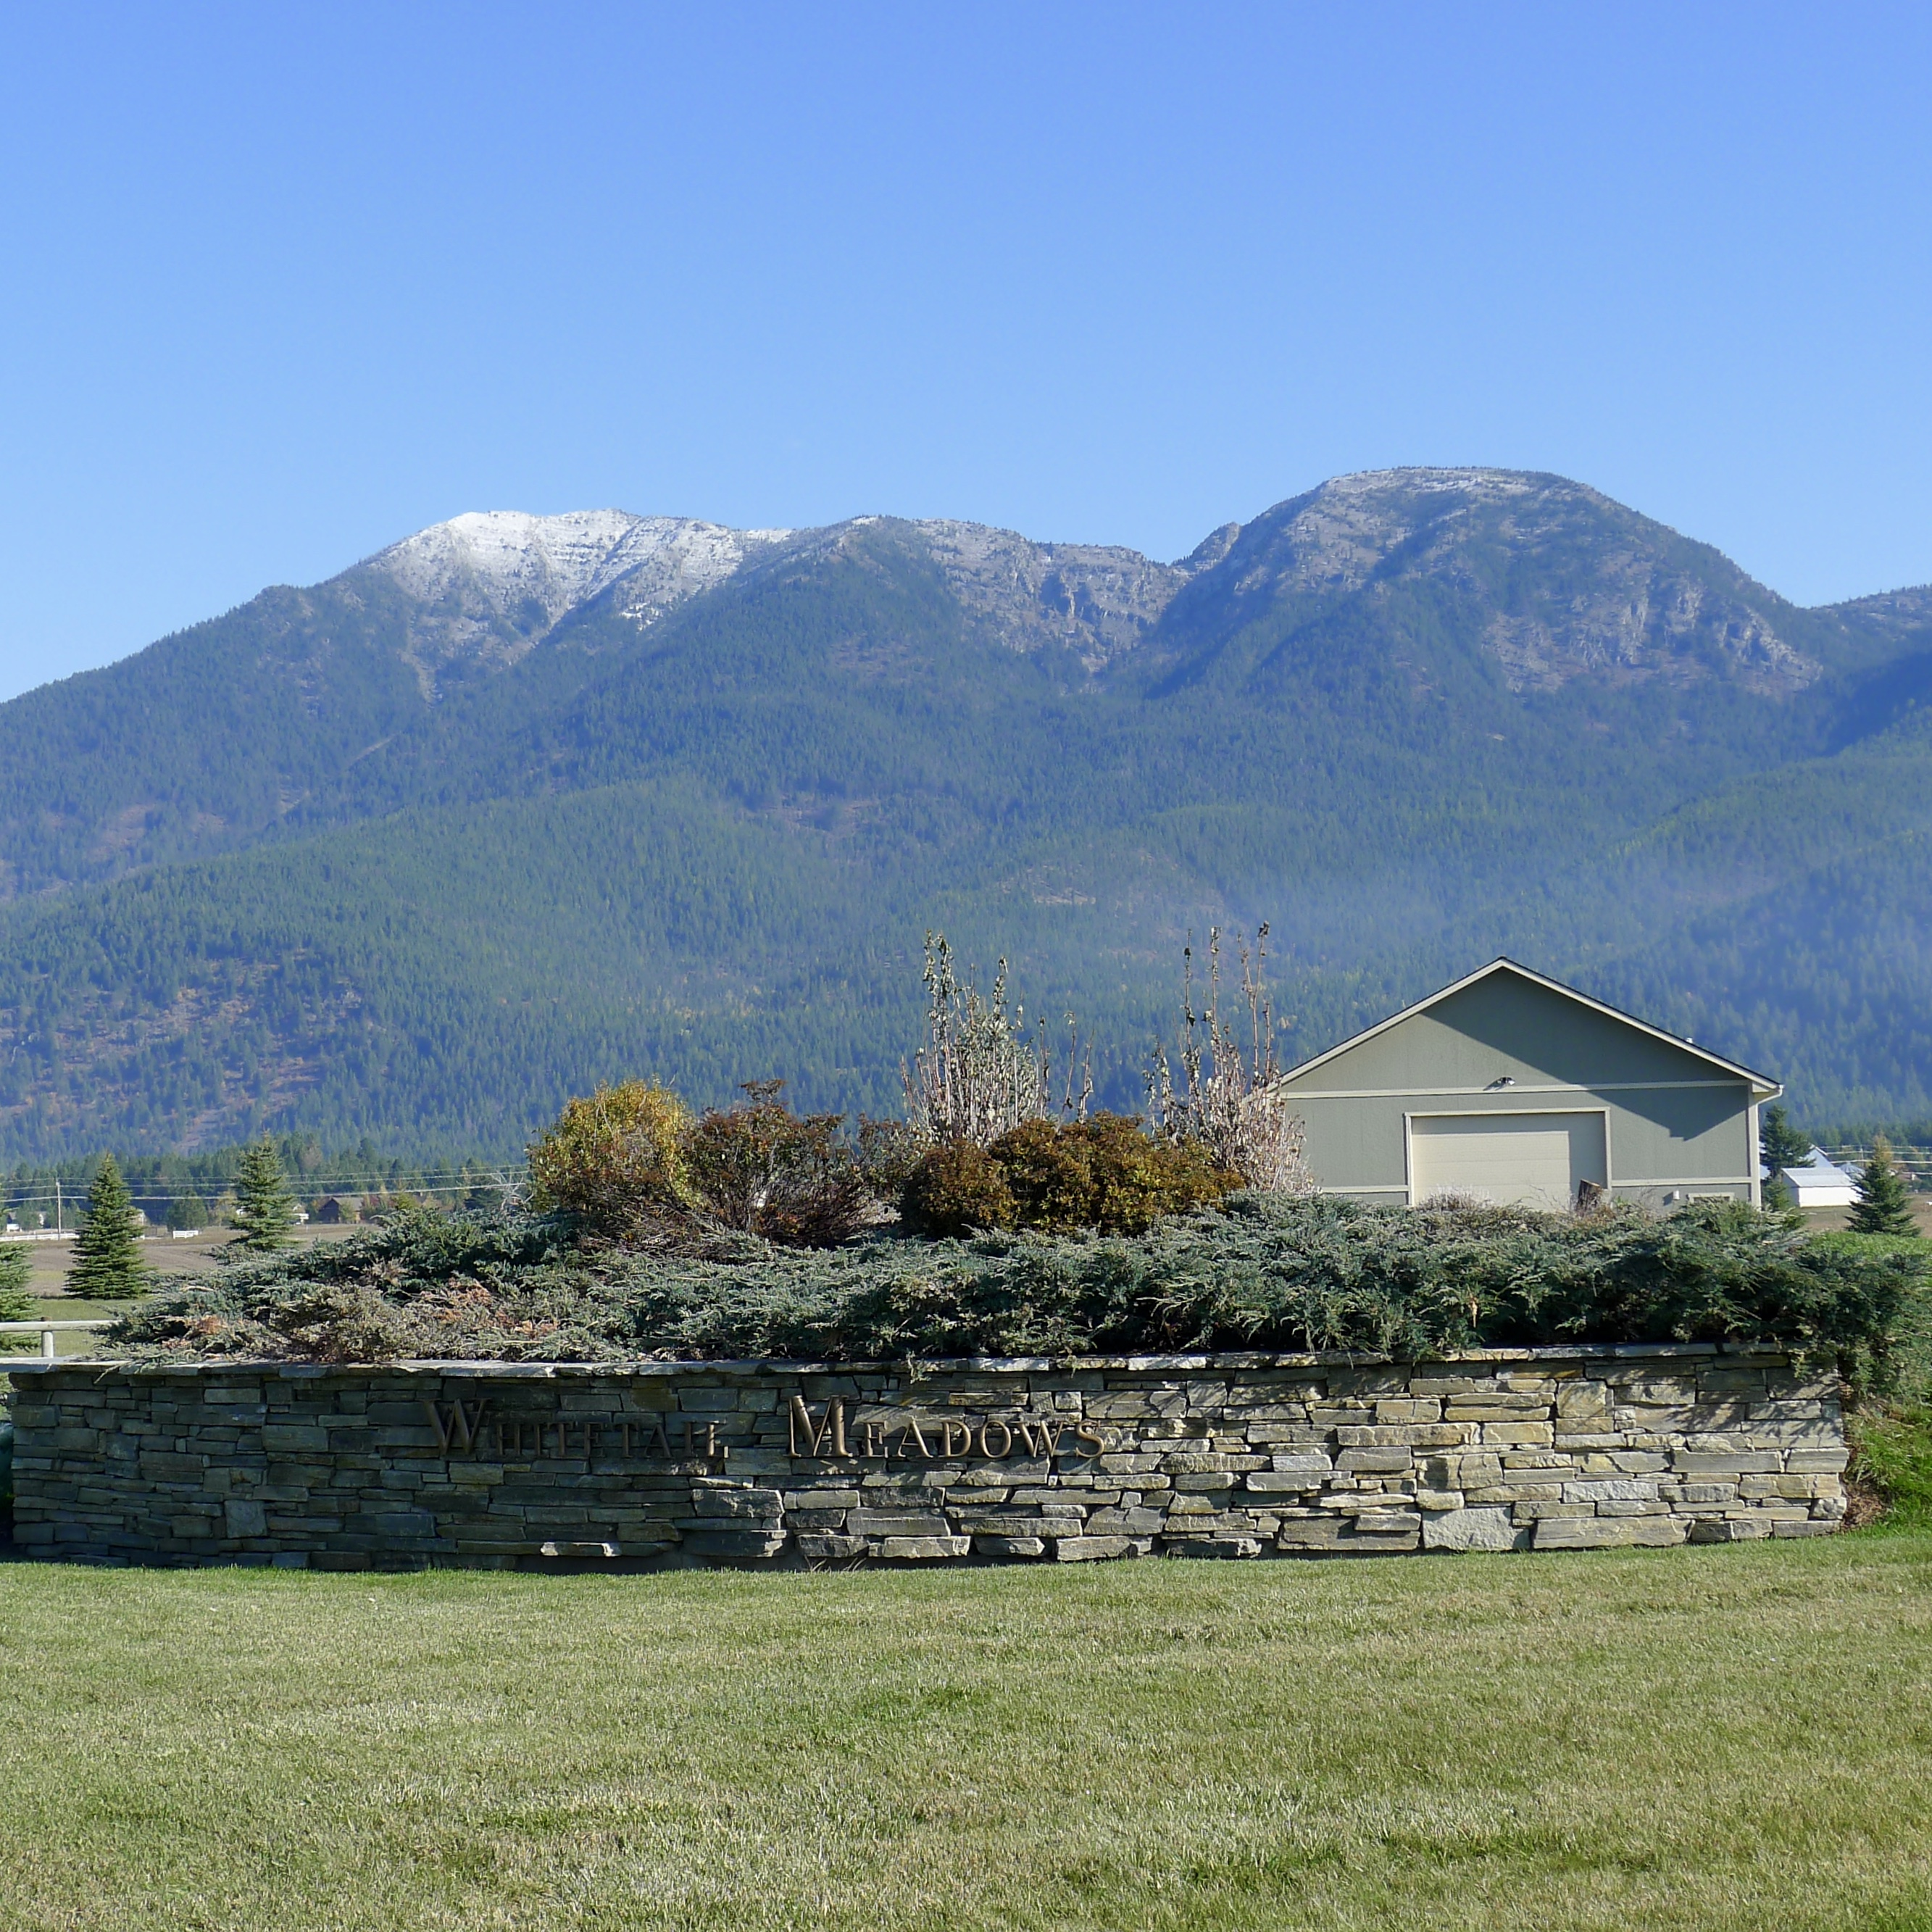 So you want land with views? photo with swan mountains in background